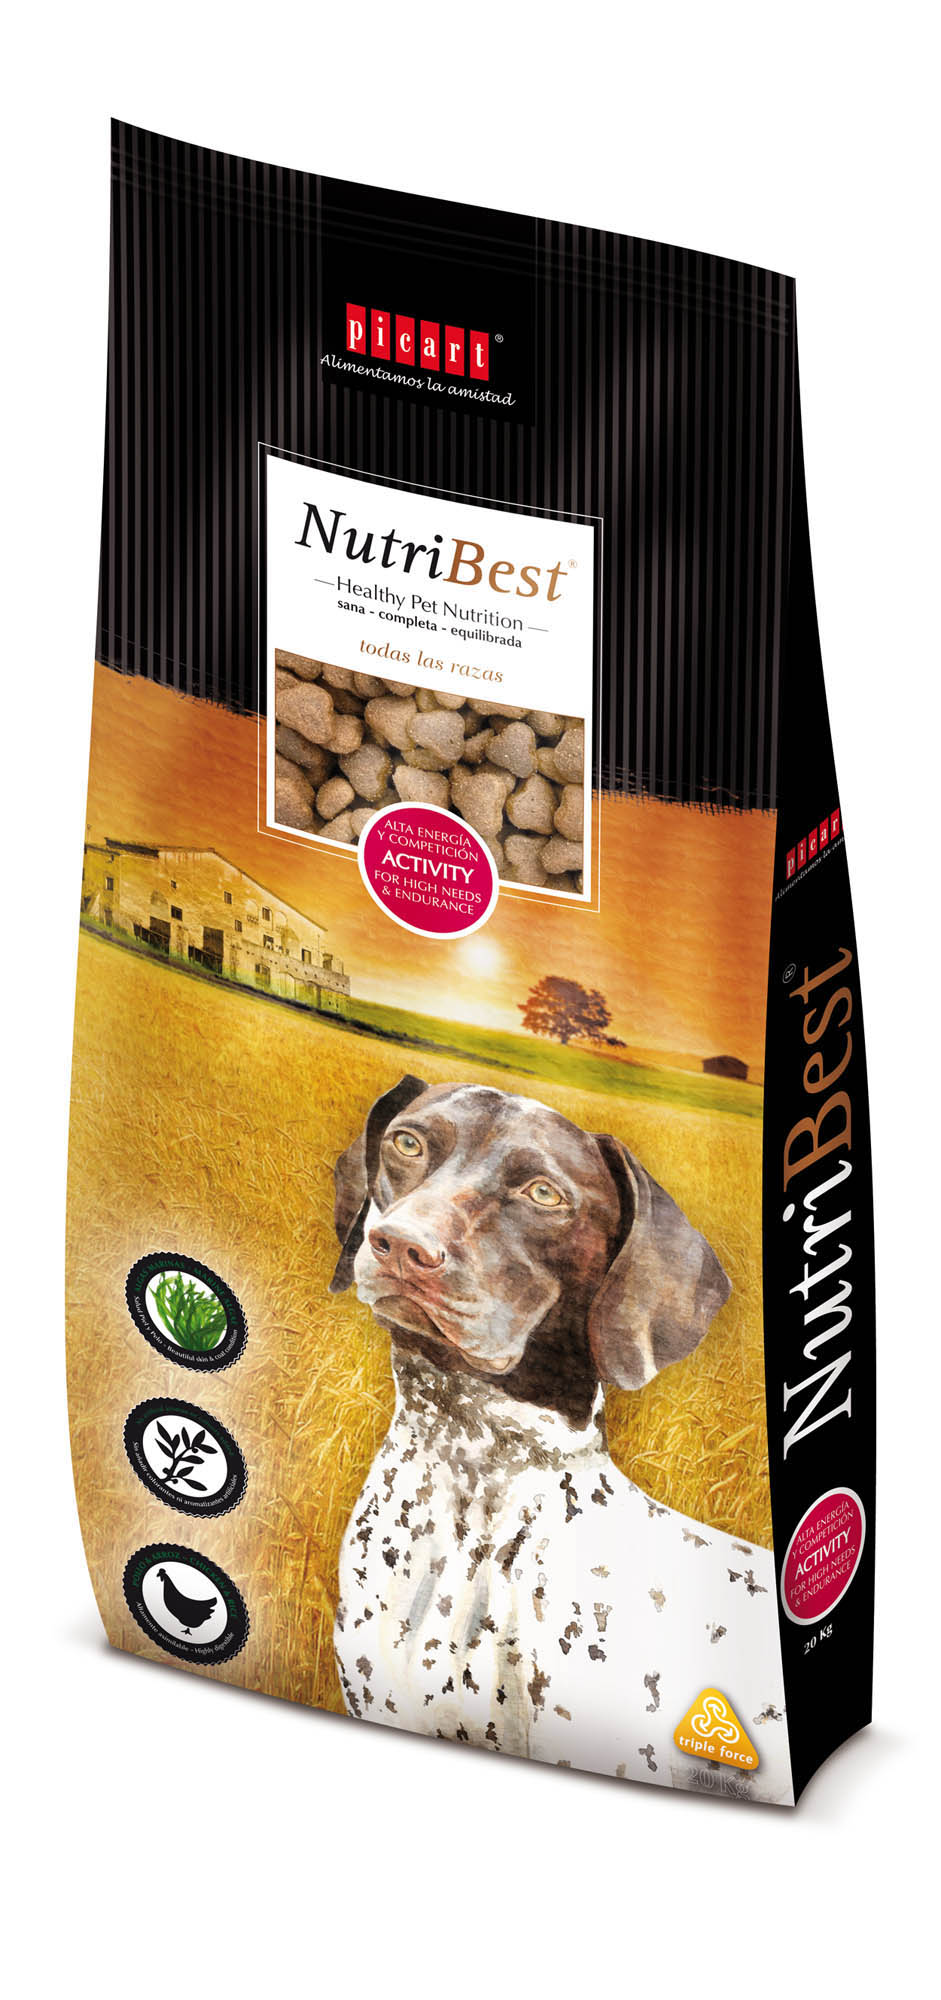 Animal feeds Nutribest by Picart